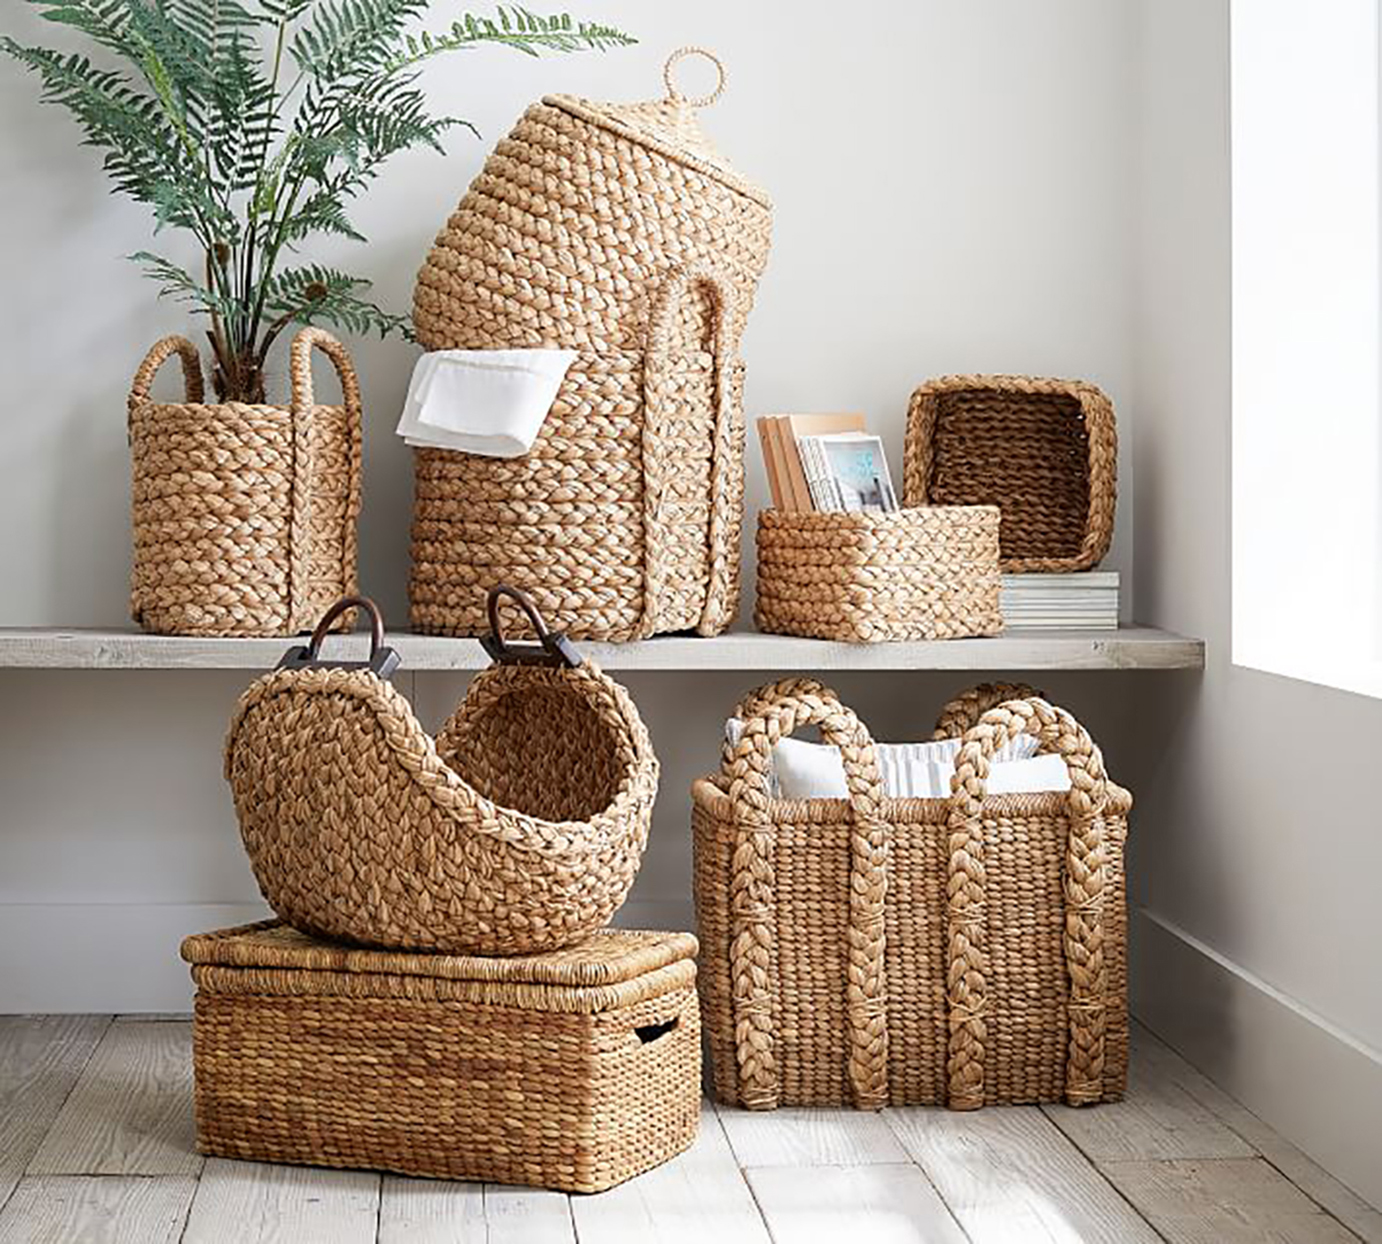 pile of woven baskets